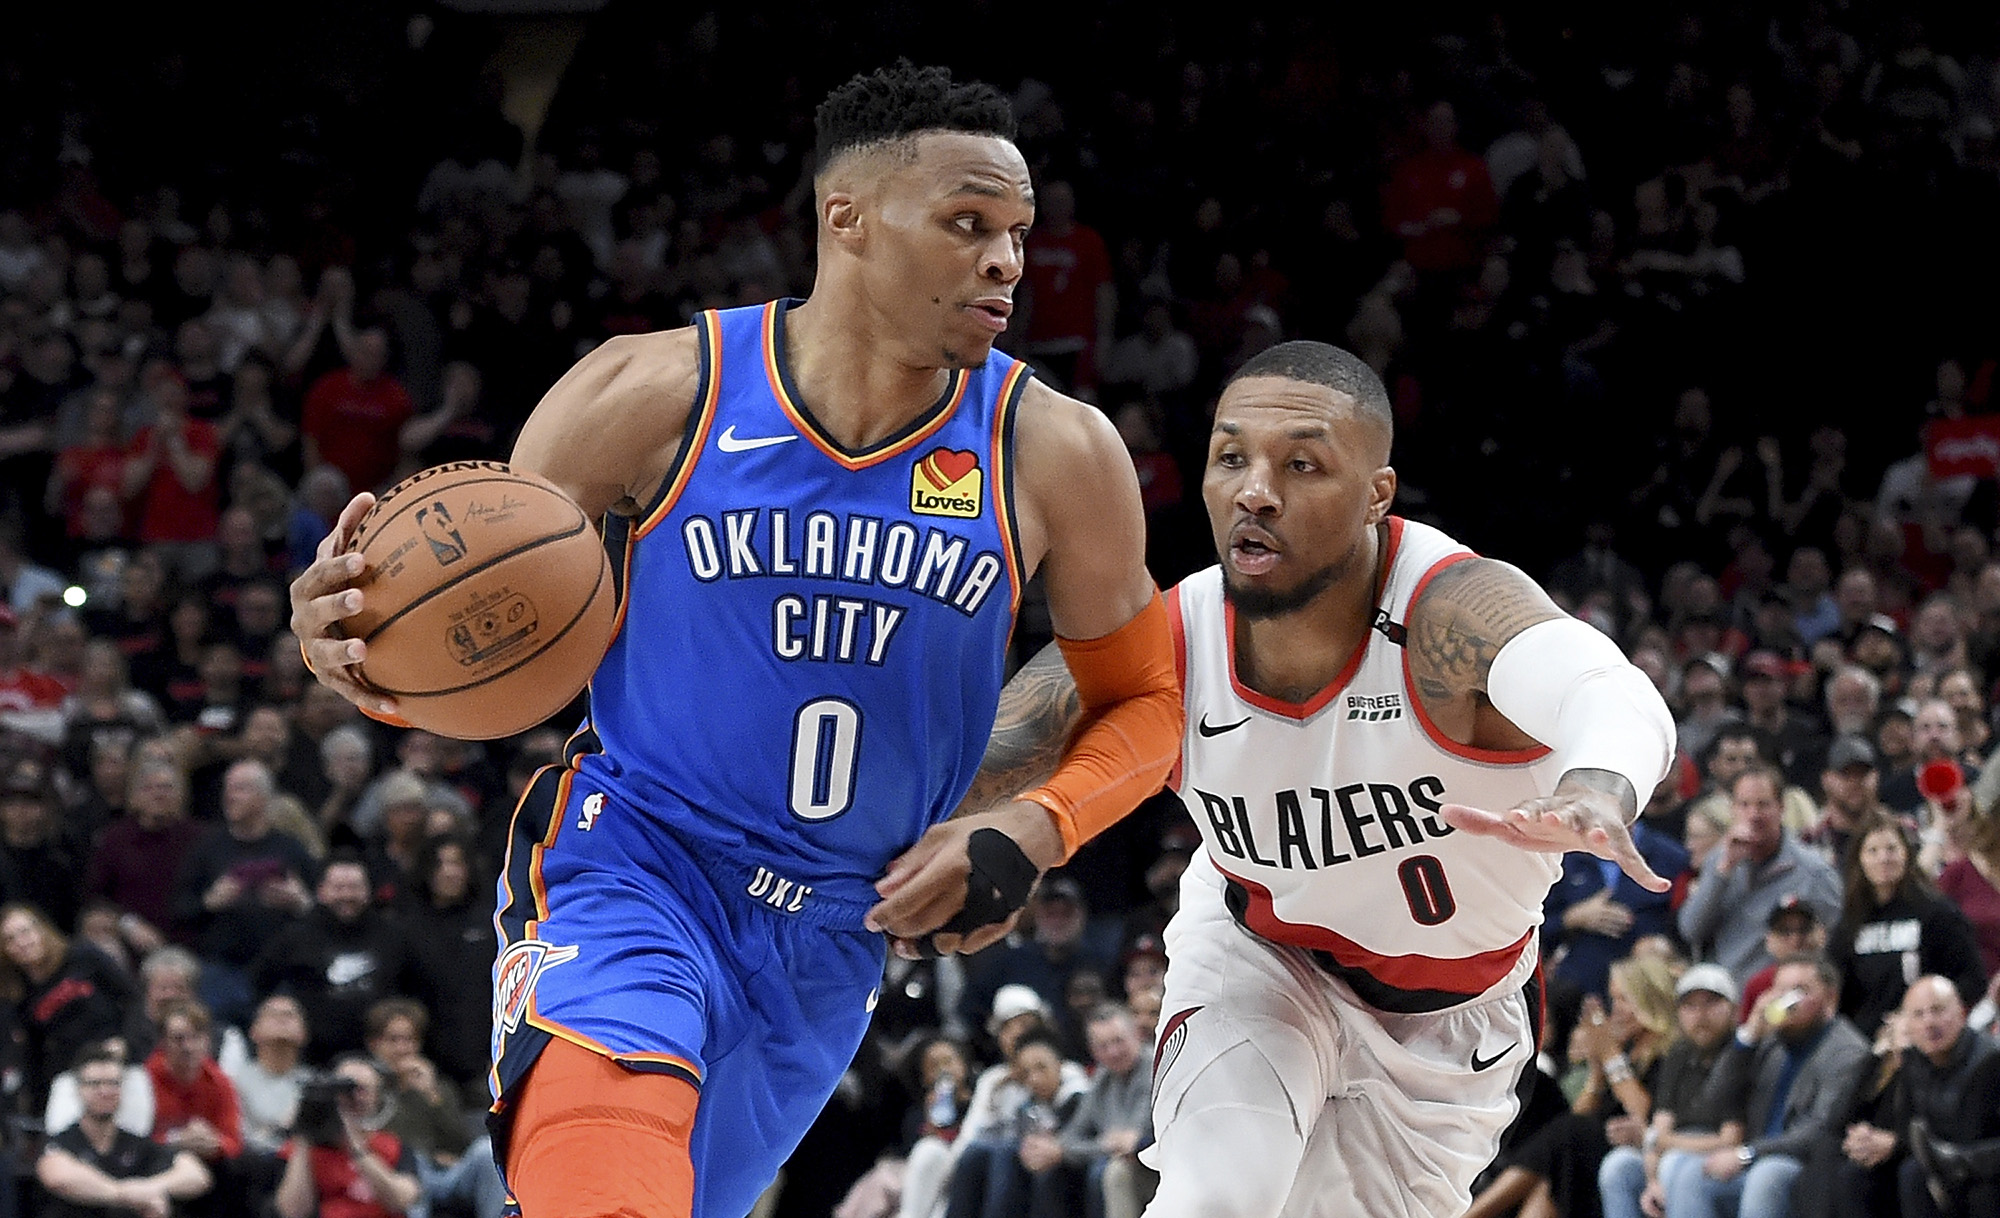 Russell Westbrook (left) and the Oklahoma City Thunder lost in the first round of the playoffs in three straight years following Kevin Durant's 2016 departure. (Steve Dykes/Getty Images)